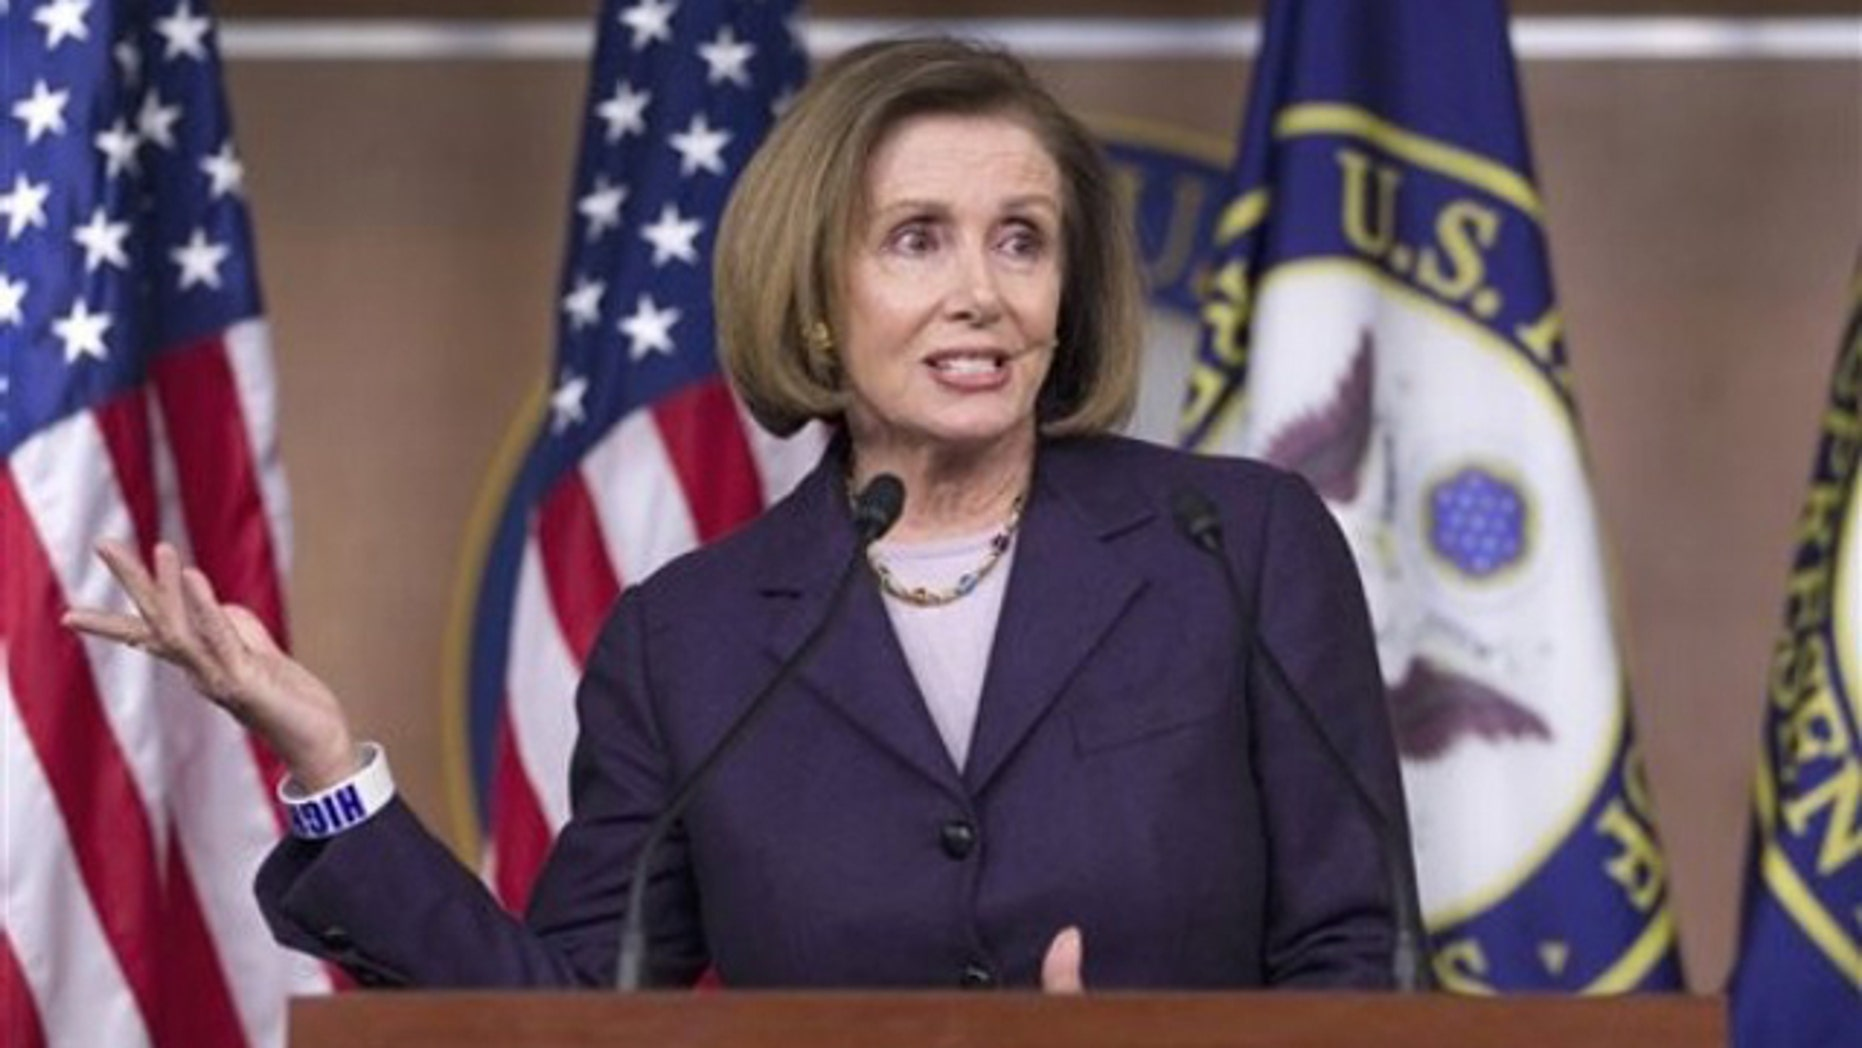 House Minority Leader Nancy Pelosi gestures during a news conference on Capitol Hill April 14.